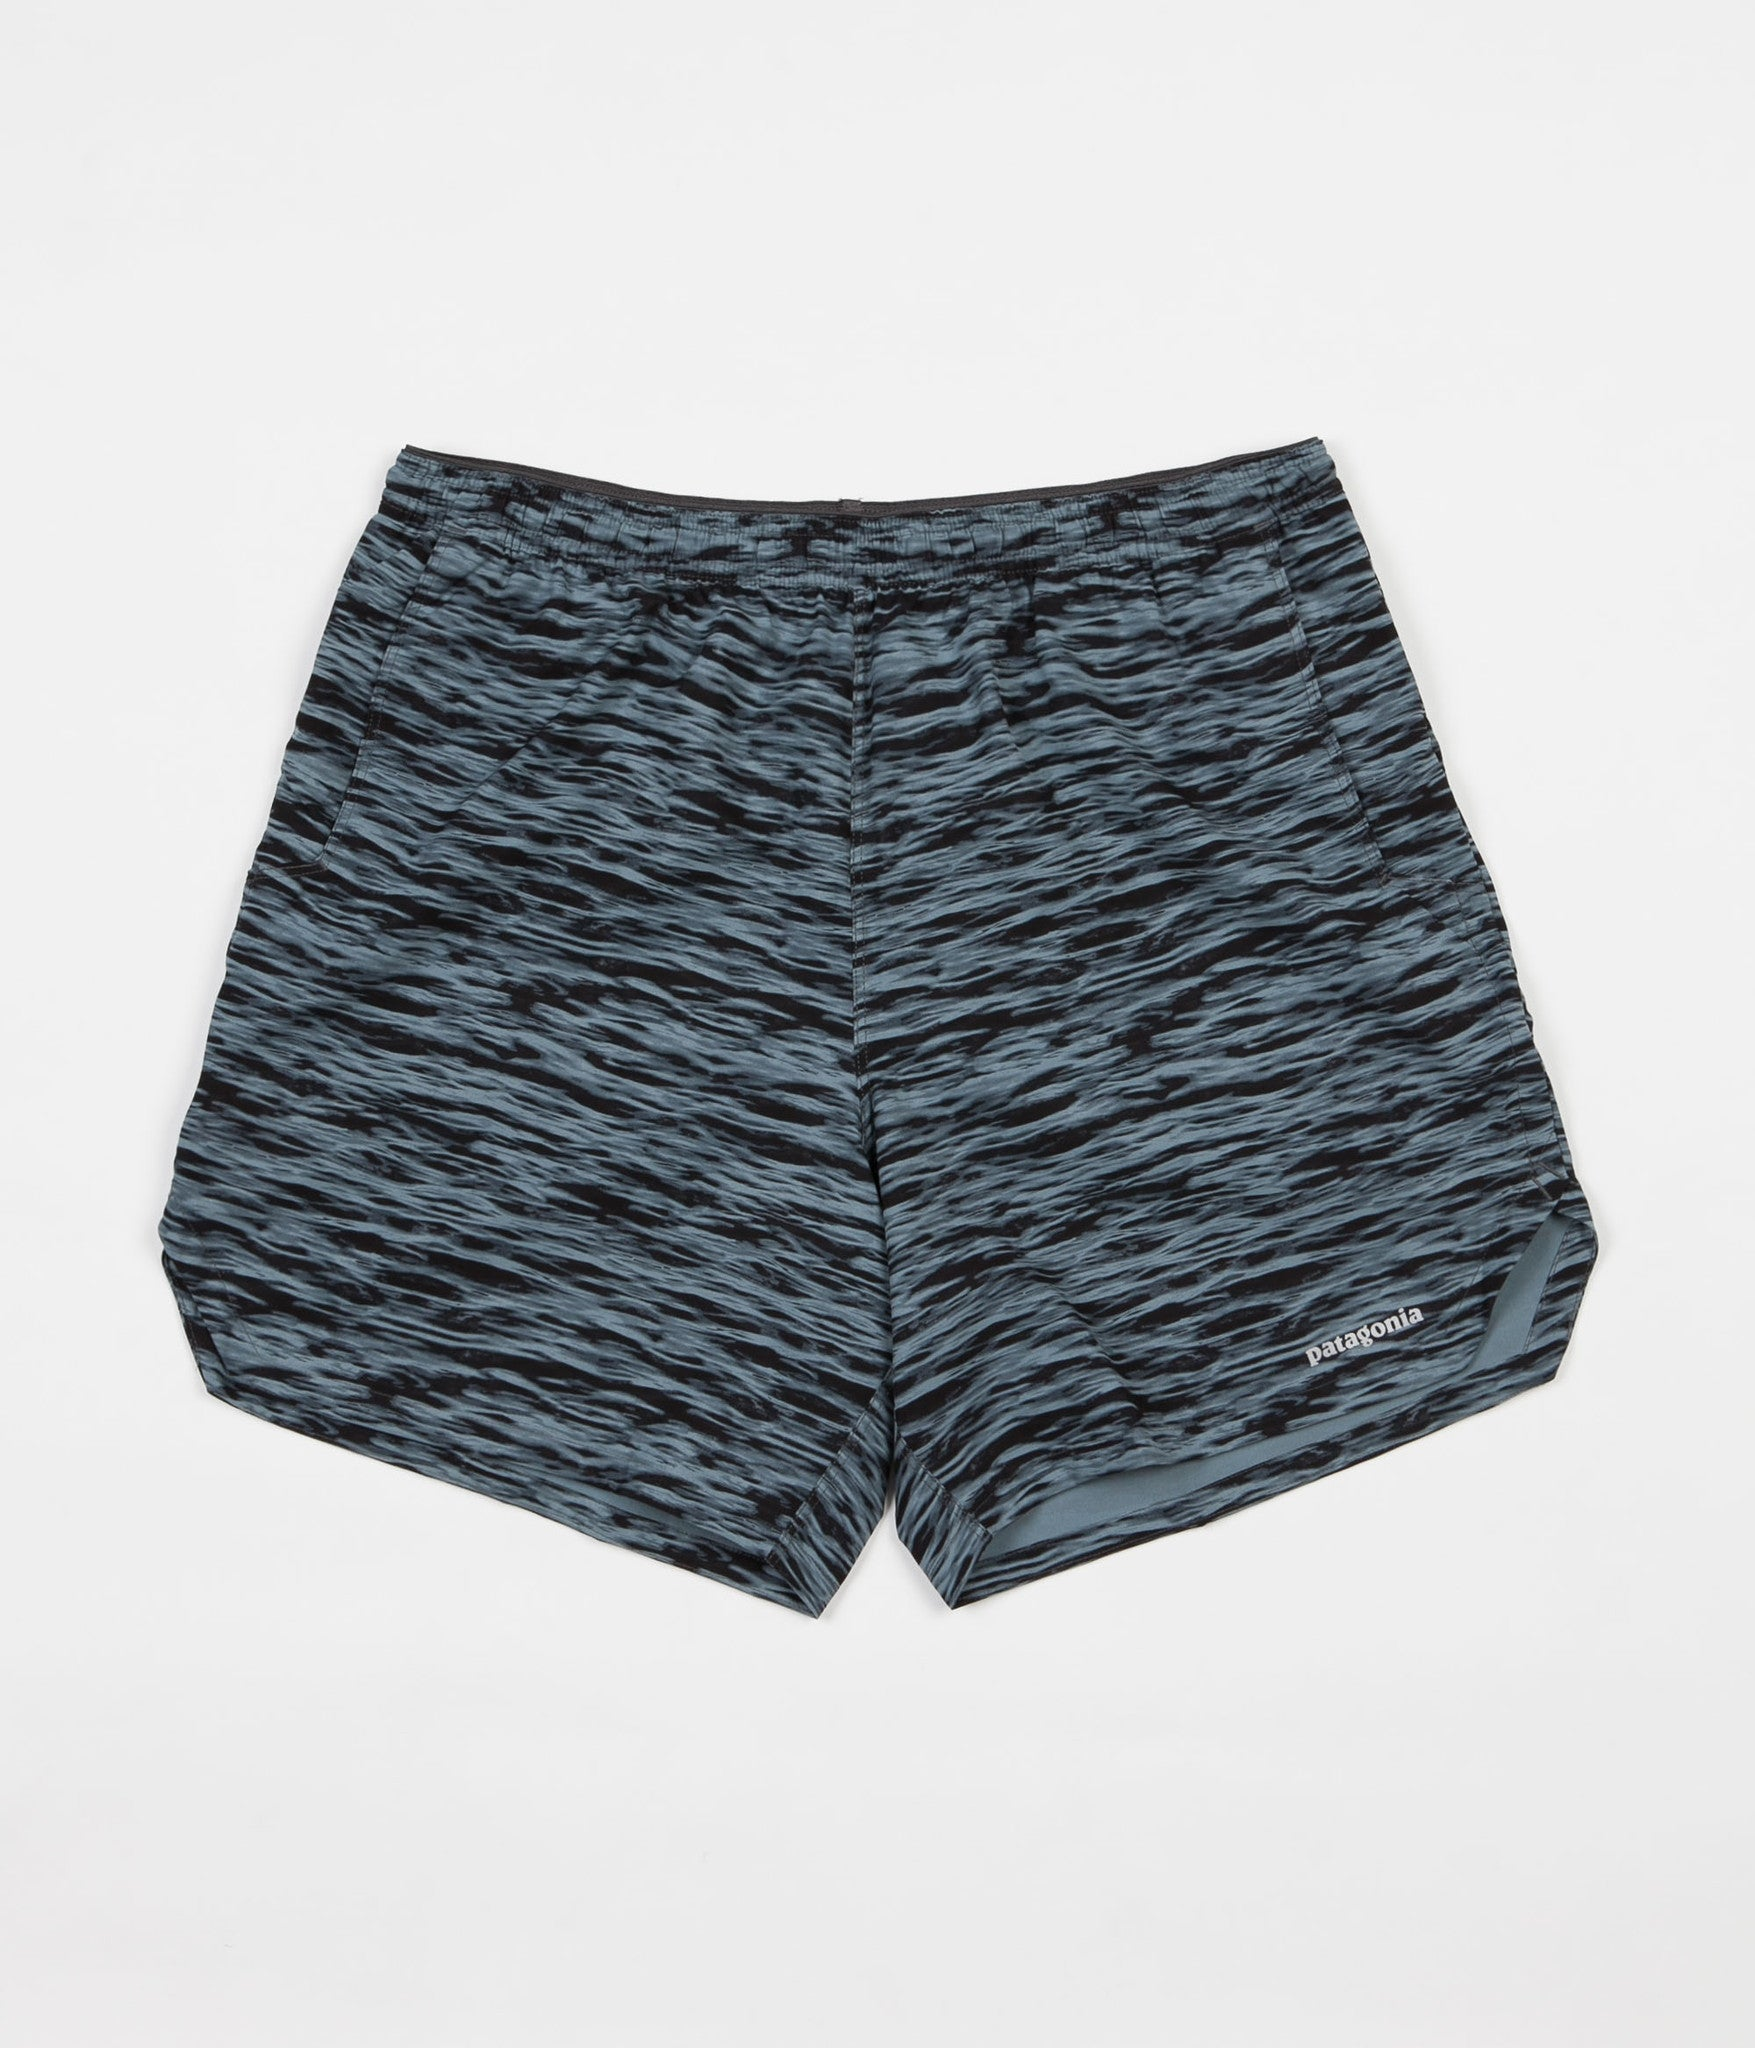 Patagonia Nine Trails Unlined Shorts - Open Oceans / Nouveau Green